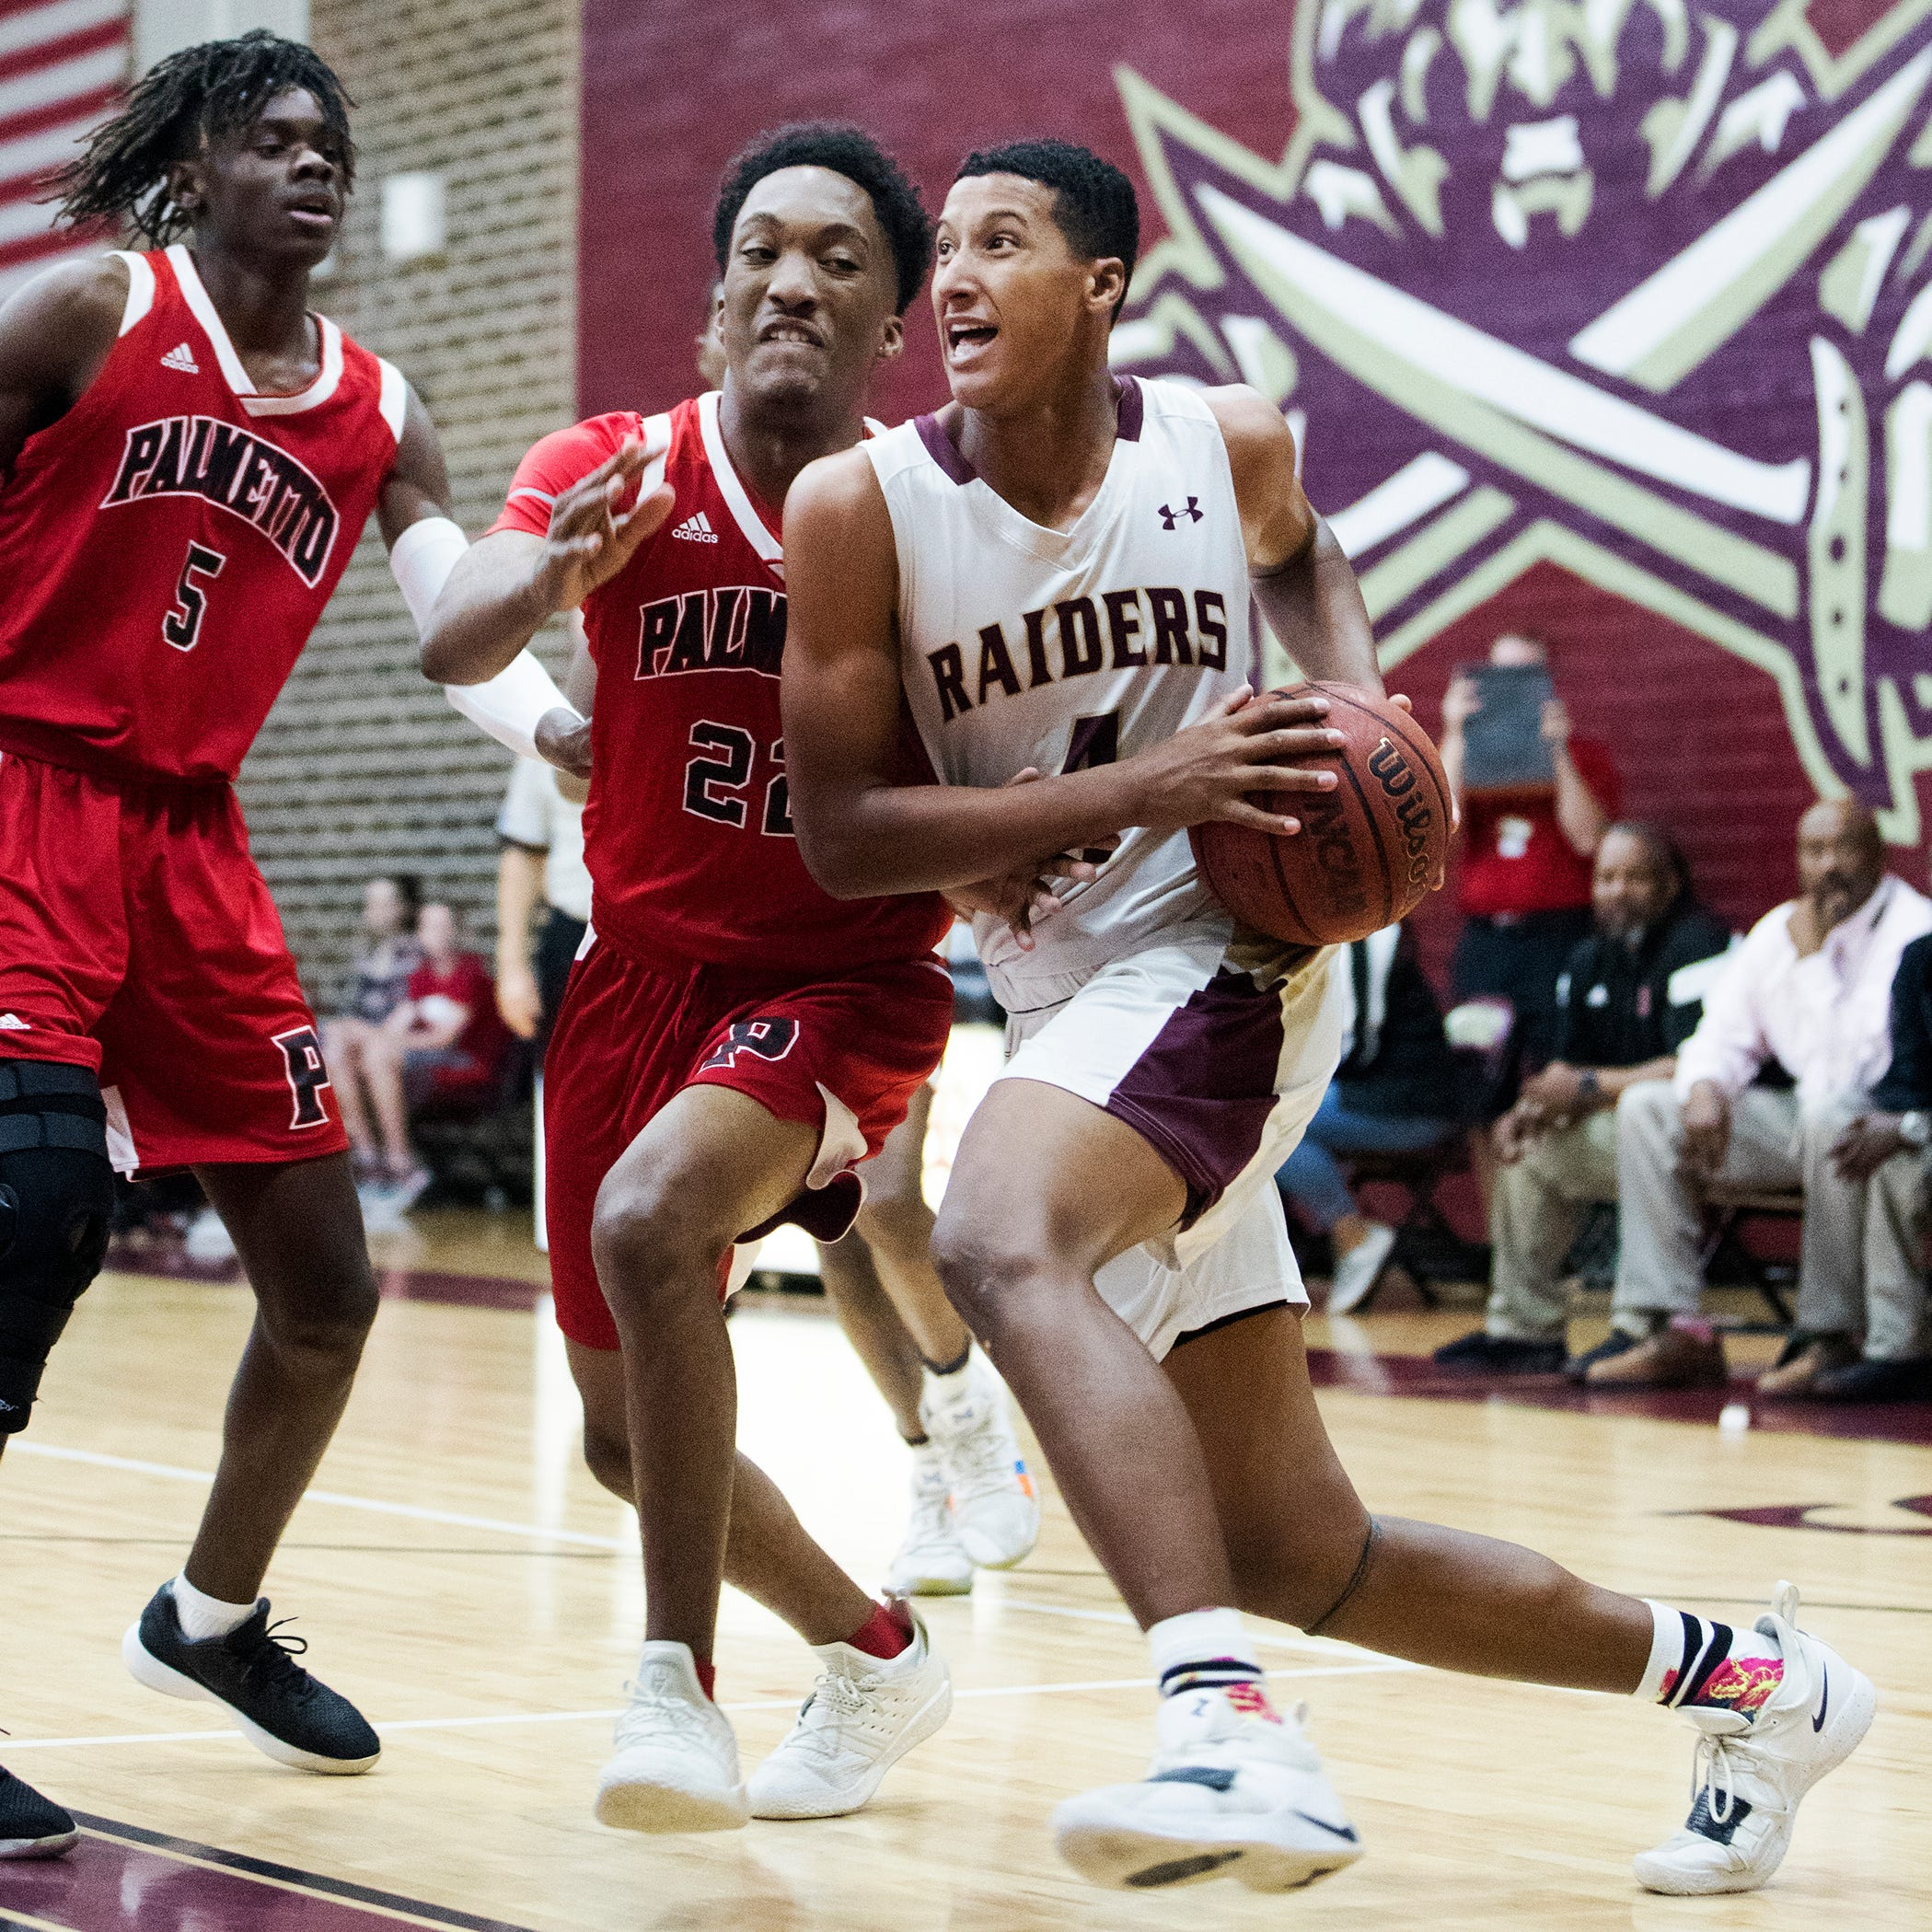 Boys basketball: Riverdale advances as do Lehigh, Fort Myers, Canterbury, and First Baptist